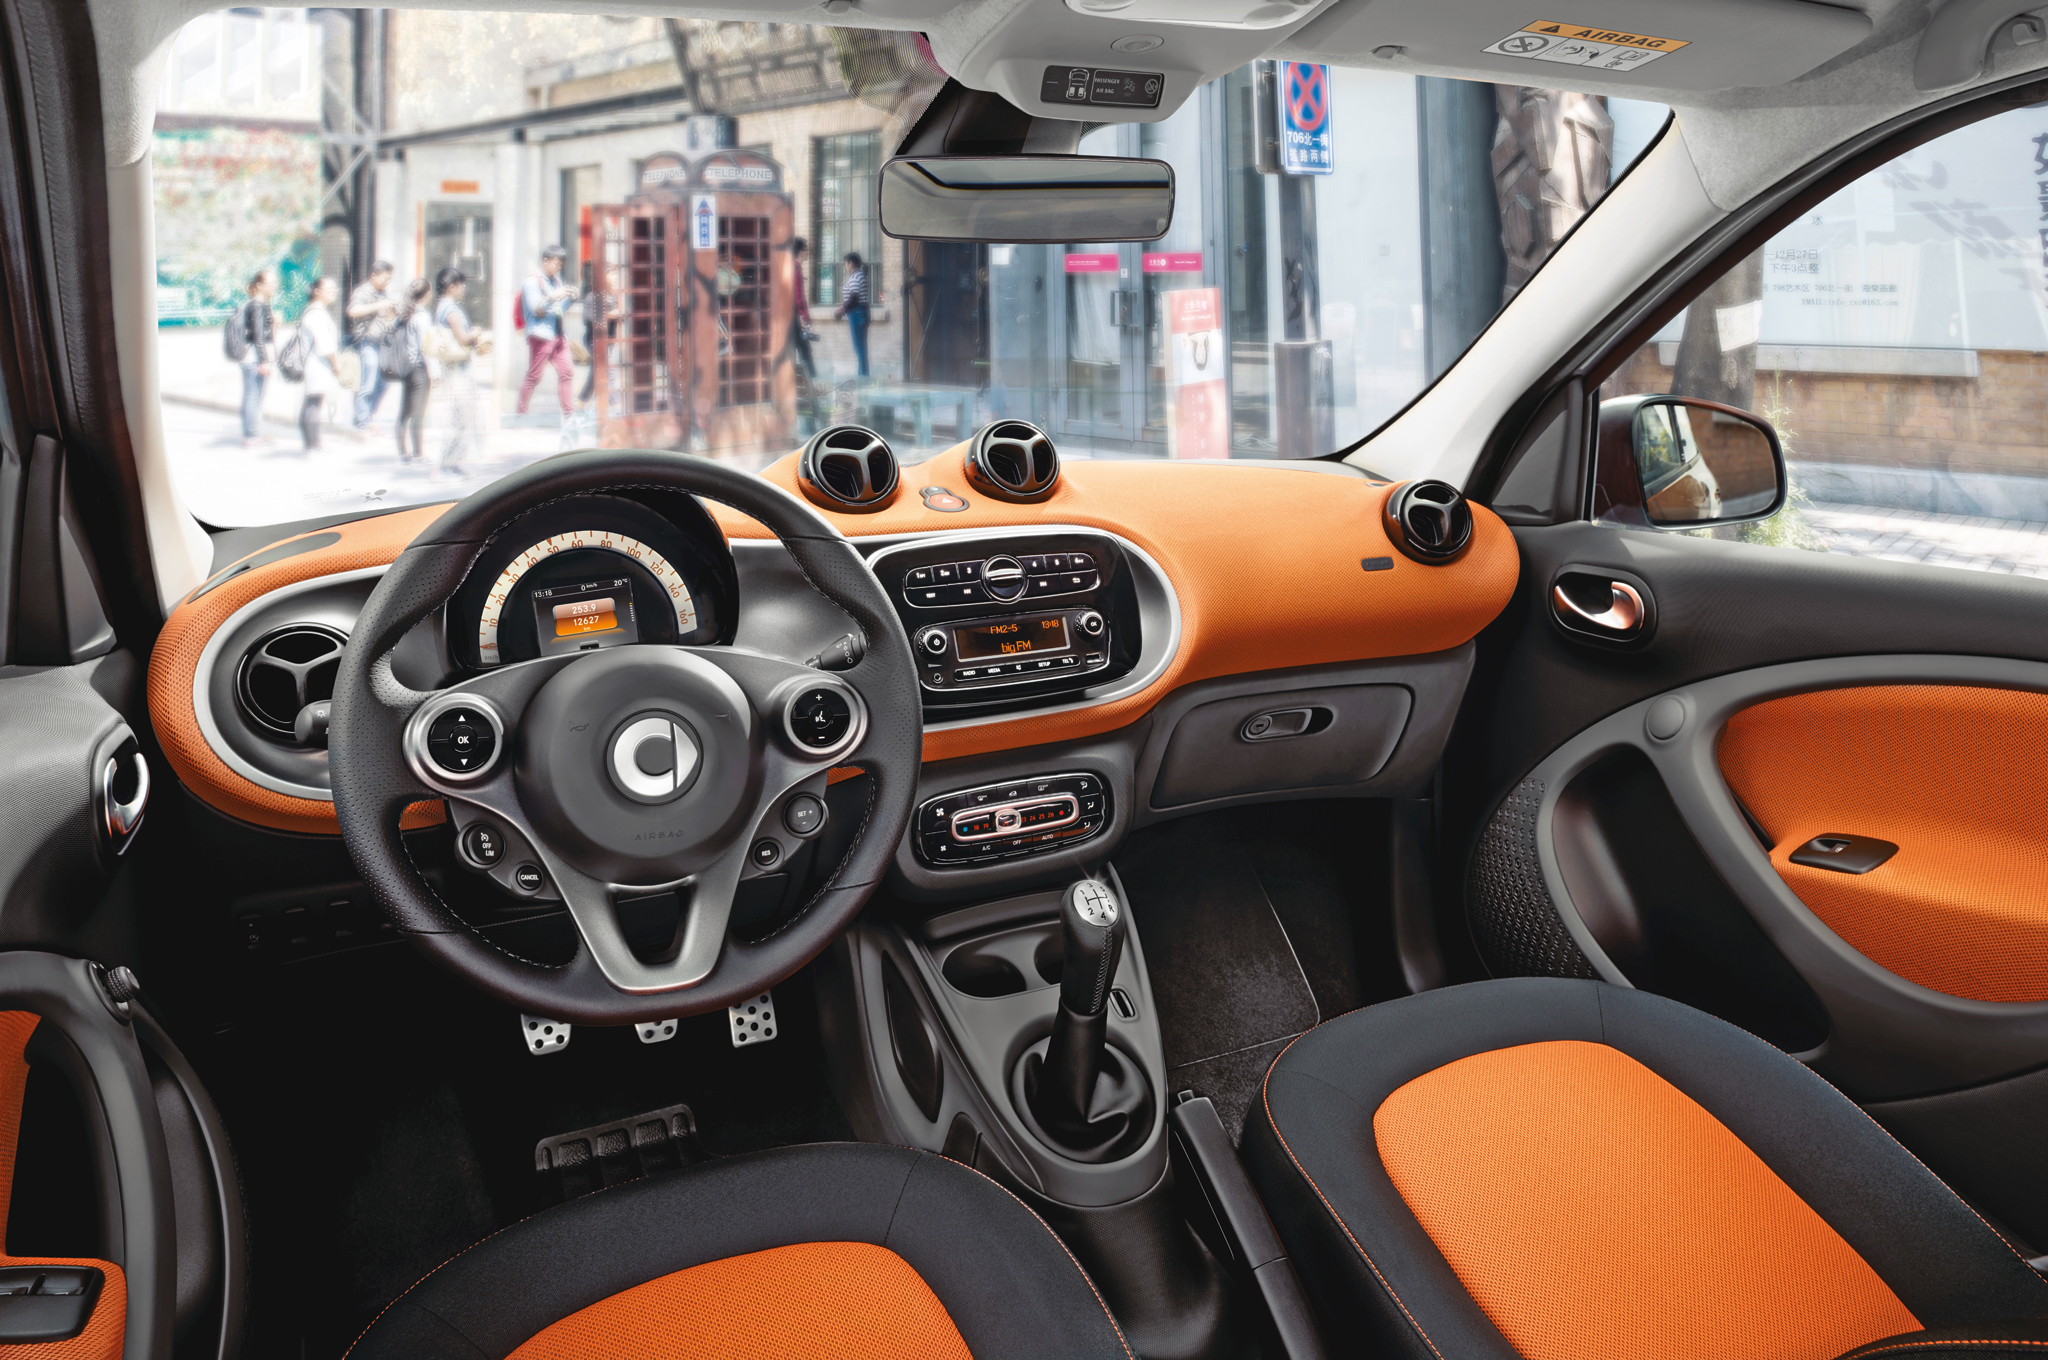 2016 Smart Fortwo Interior And Dashboard (Photo 4 of 17)